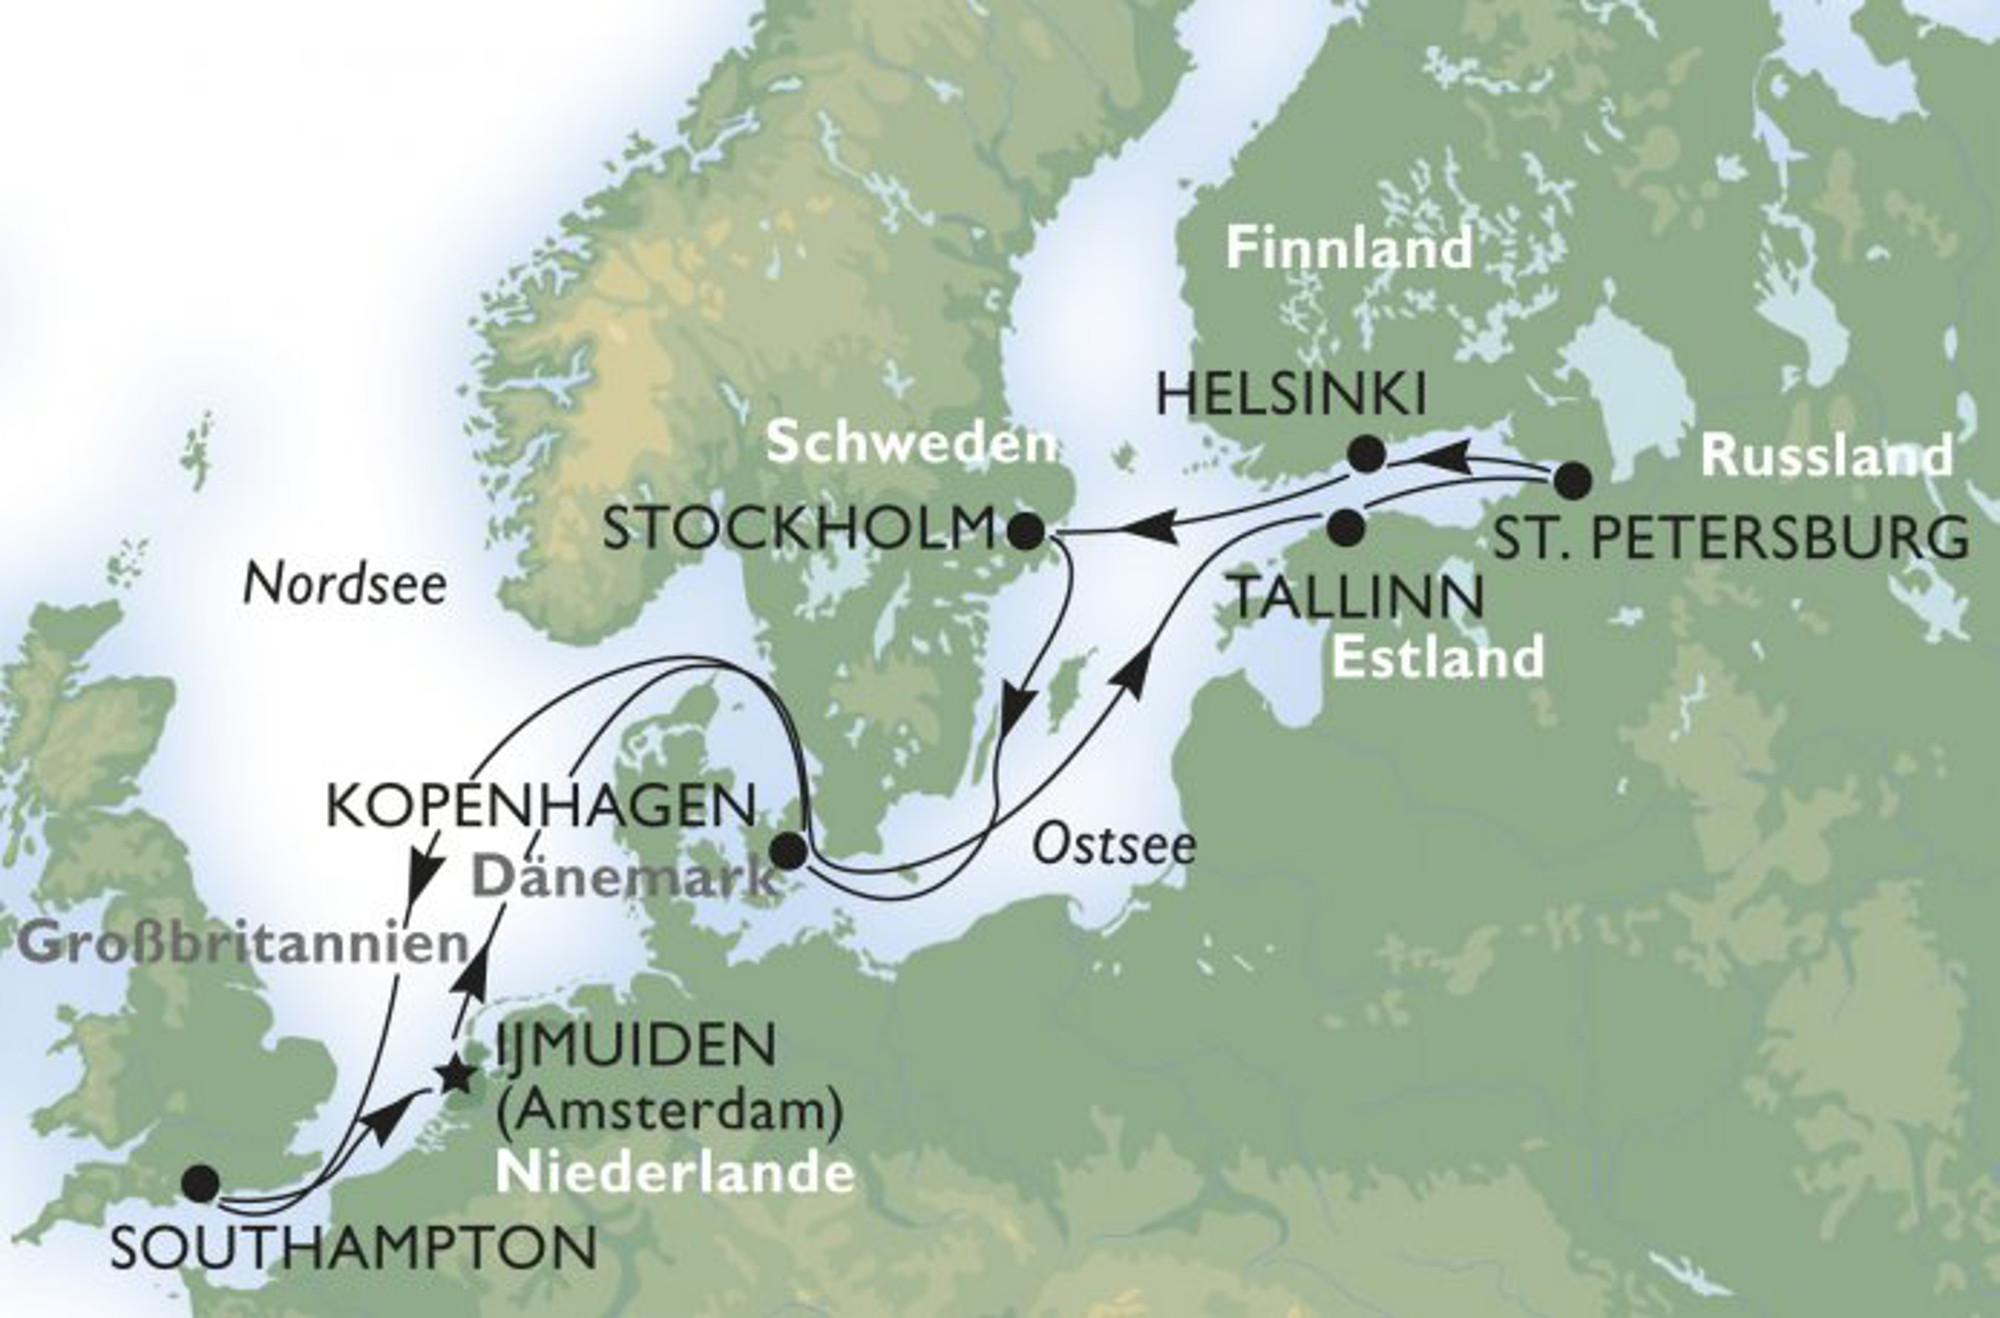 route-msc-opera-nord-ostsee-amsterdam-nach-amsterdam